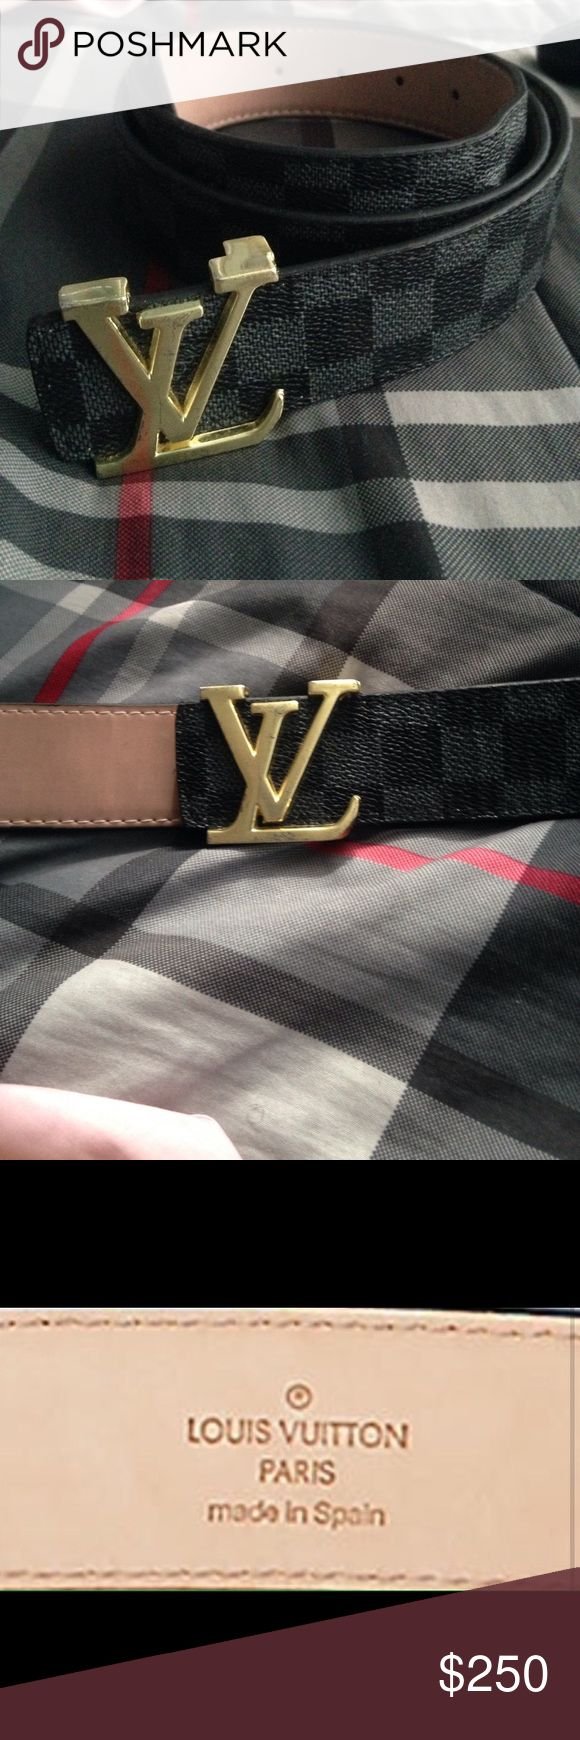 Resversible Louis Vuitton Belt w/Bag&Box Black and Grey, Made In Spain, Back buckle doesn't say Louis Vuitton. (Real) Louis Vuitton Accessories Belts